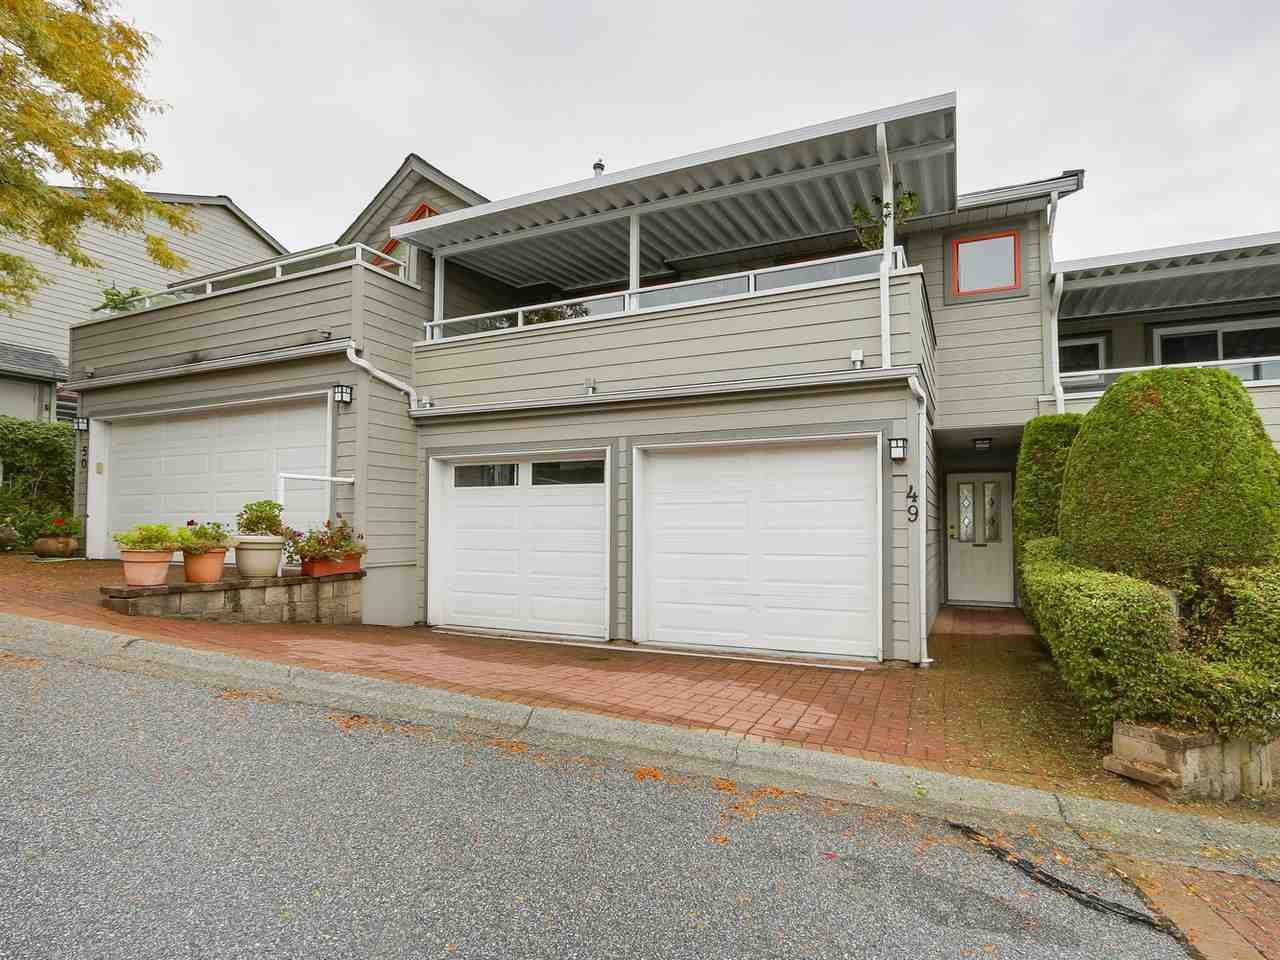 Main Photo: 49 323 GOVERNORS COURT in New Westminster: Fraserview NW Townhouse for sale : MLS®# R2213153